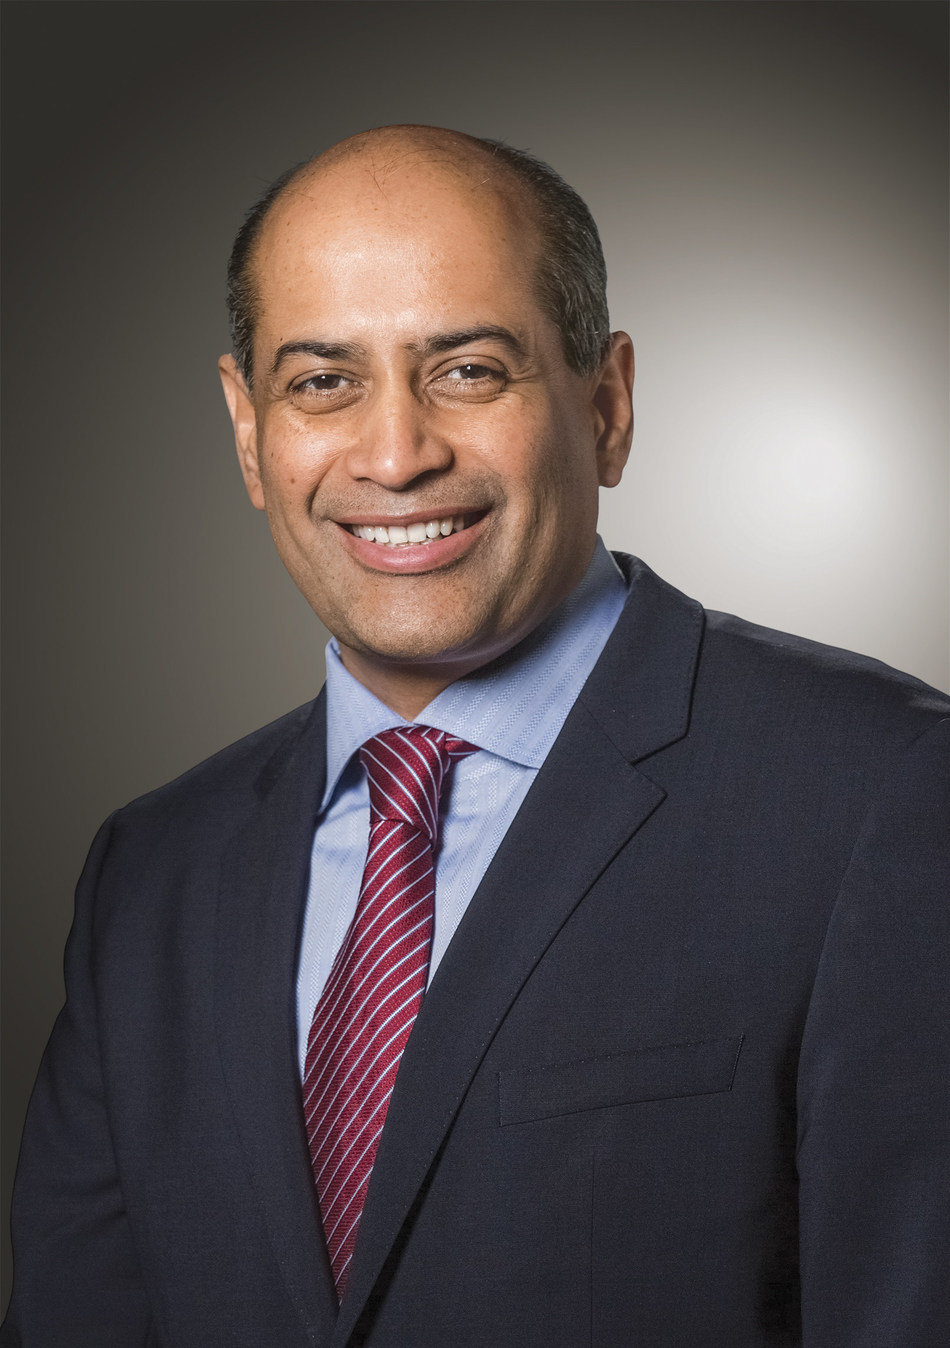 On March 1, 2019, Deere & Company announced that its Board of Directors elected Rajesh Kalathur, 50, to the position of President, John Deere Financial and Chief Information Officer.